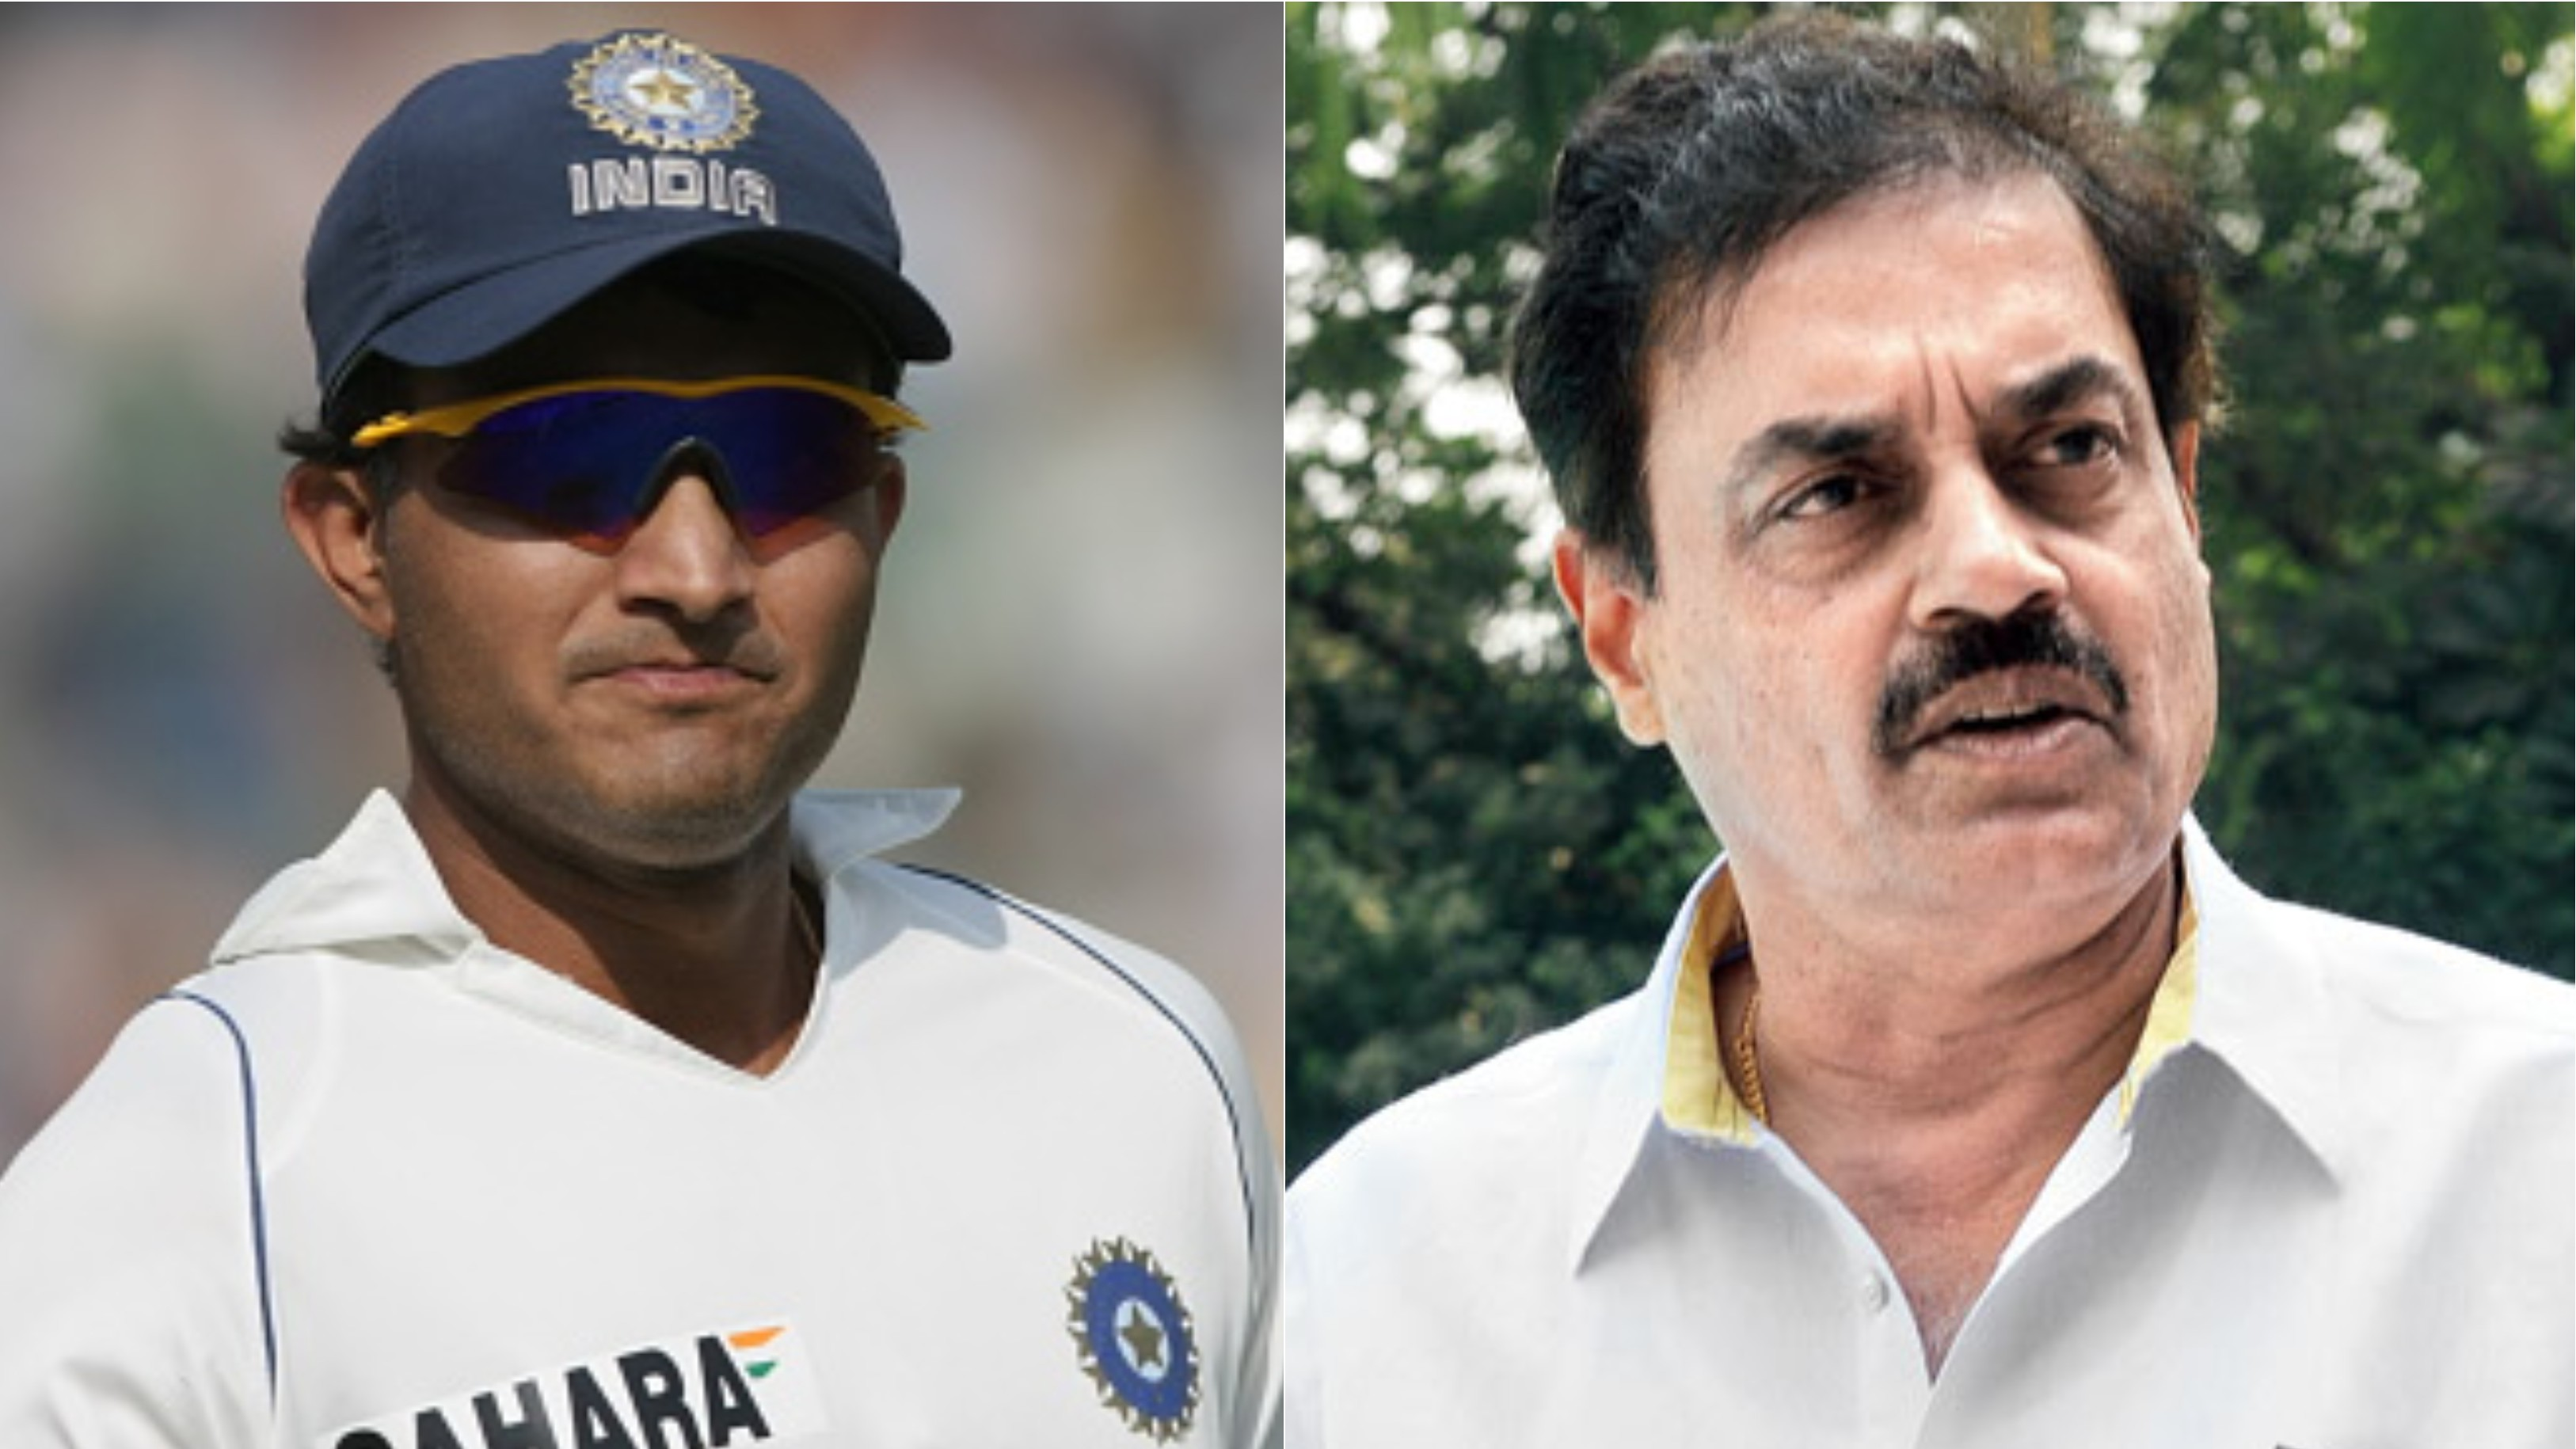 Ganguly would have done better in Tests had he batted higher, says Dilip Vengsarkar